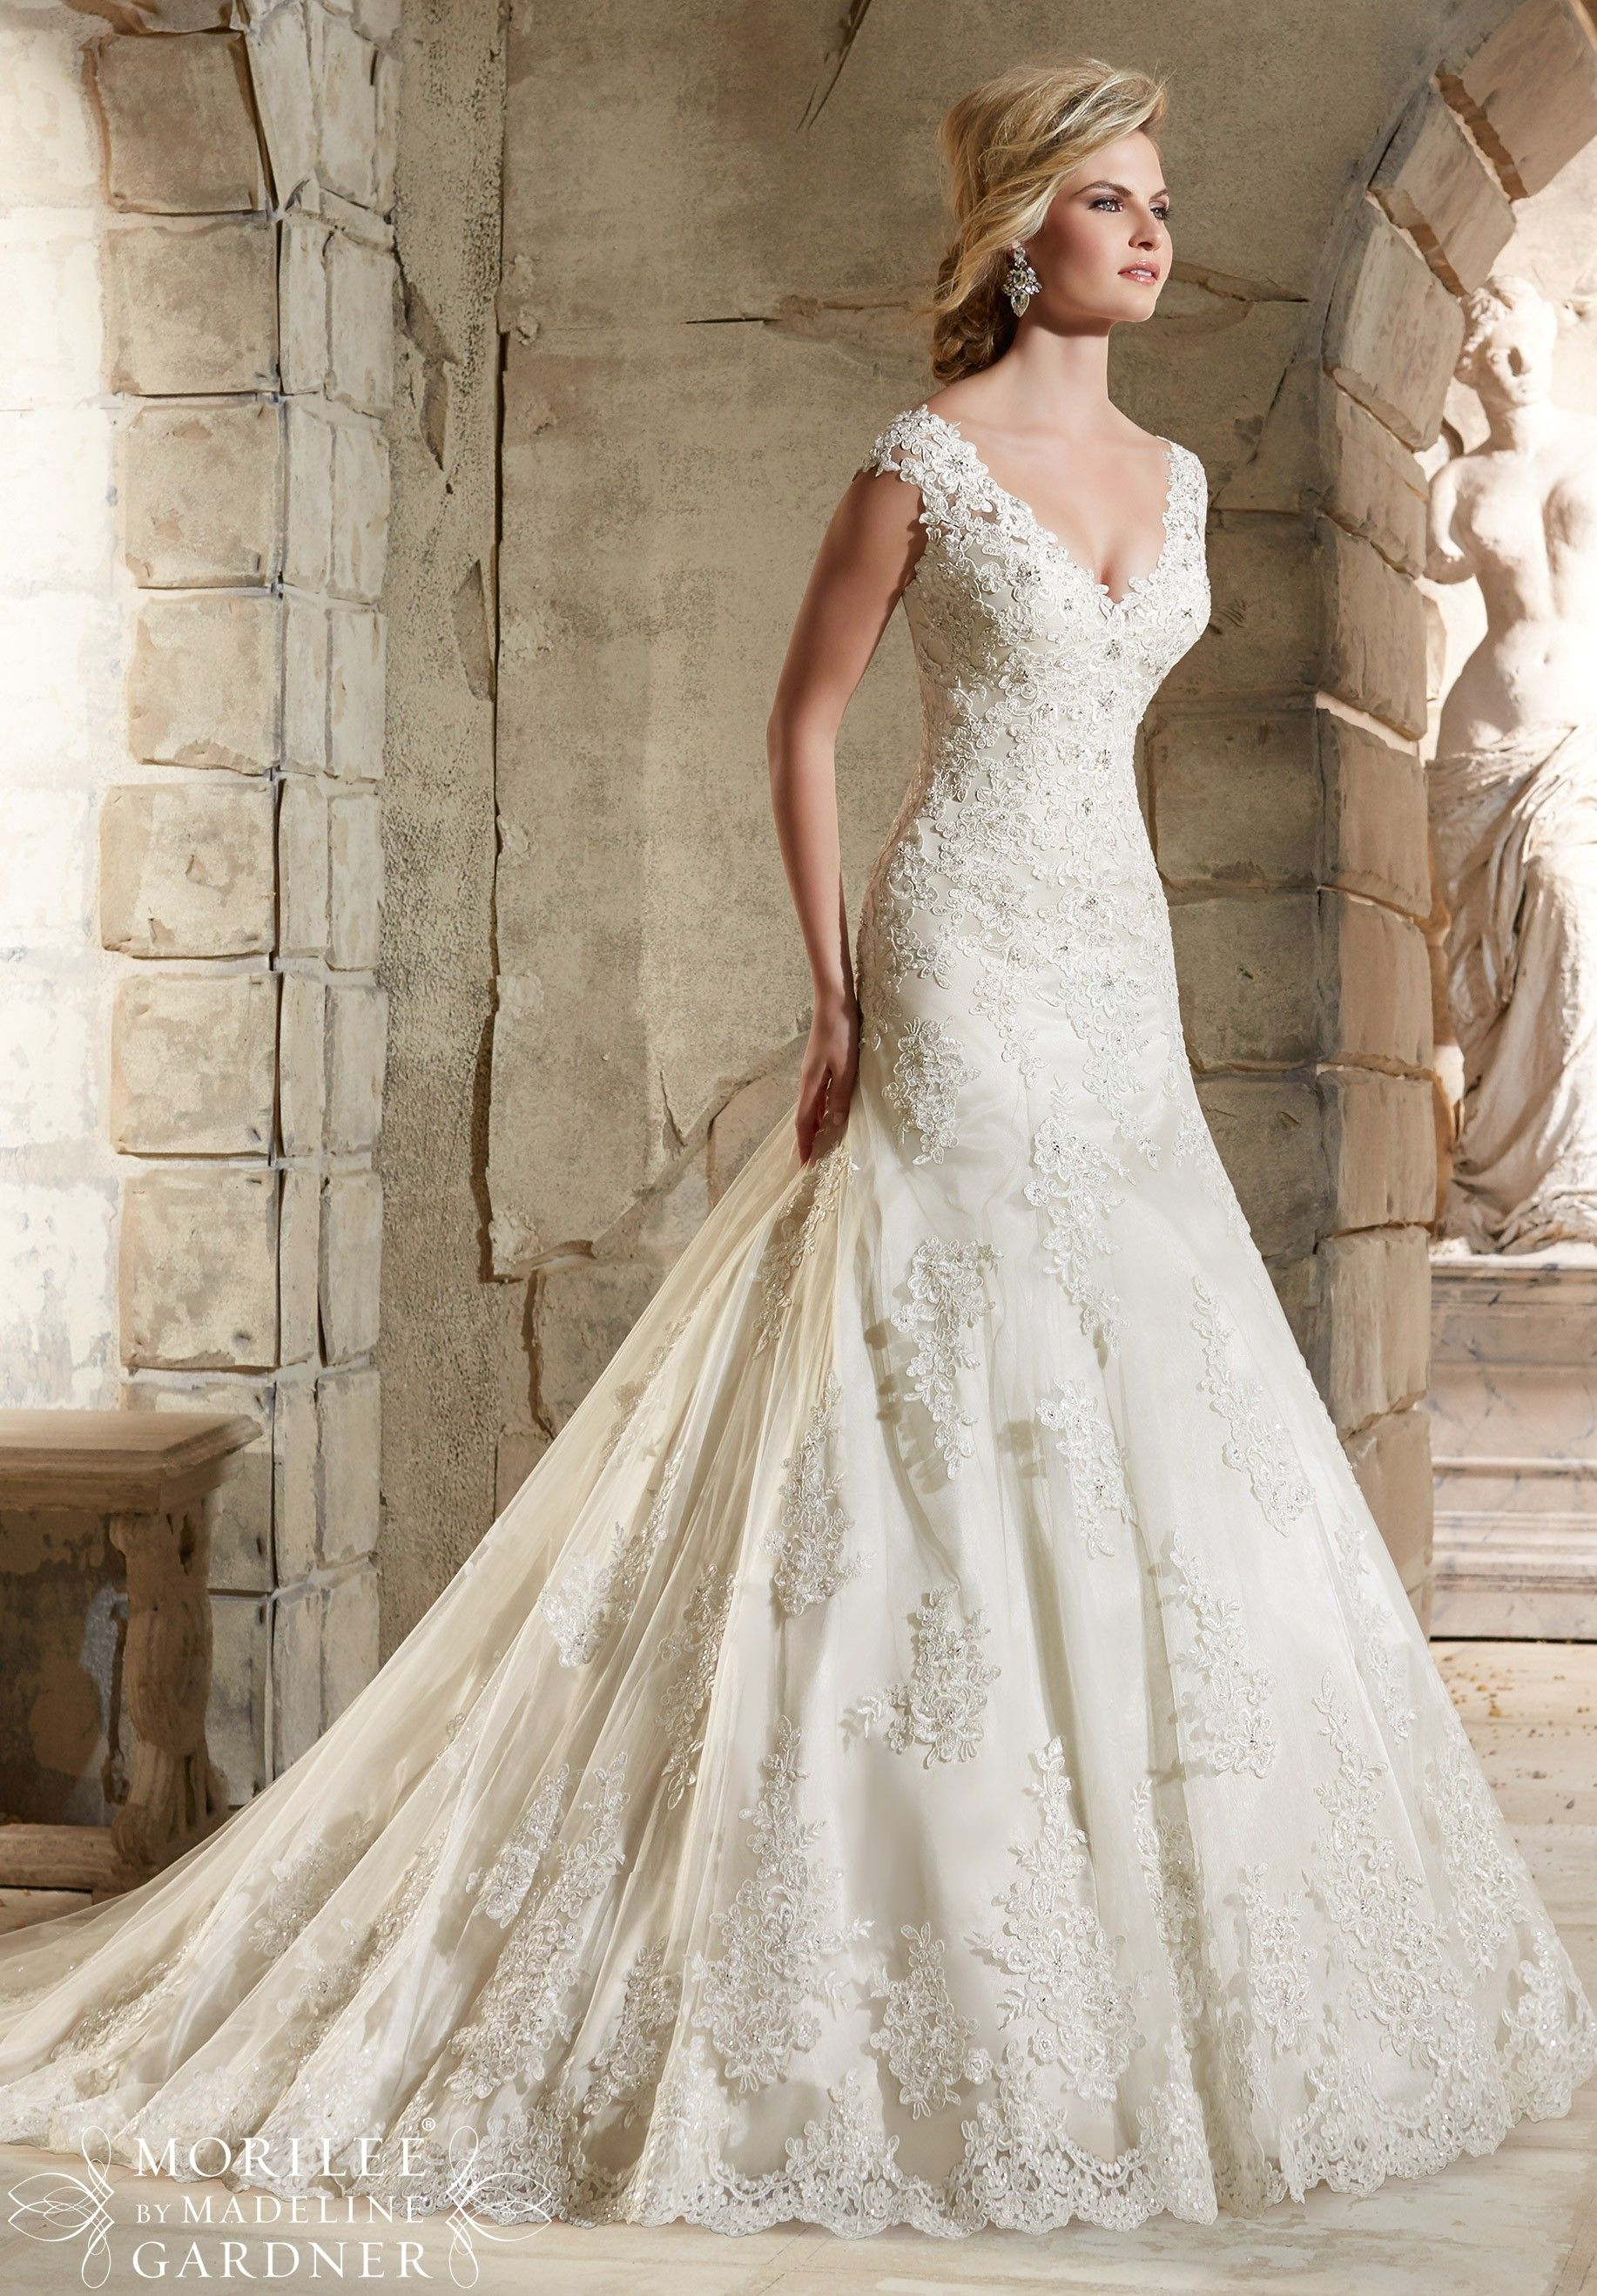 Mori Lee Wedding Dresses - Style 2785 [2785] - $1,398.00 : Wedding ...